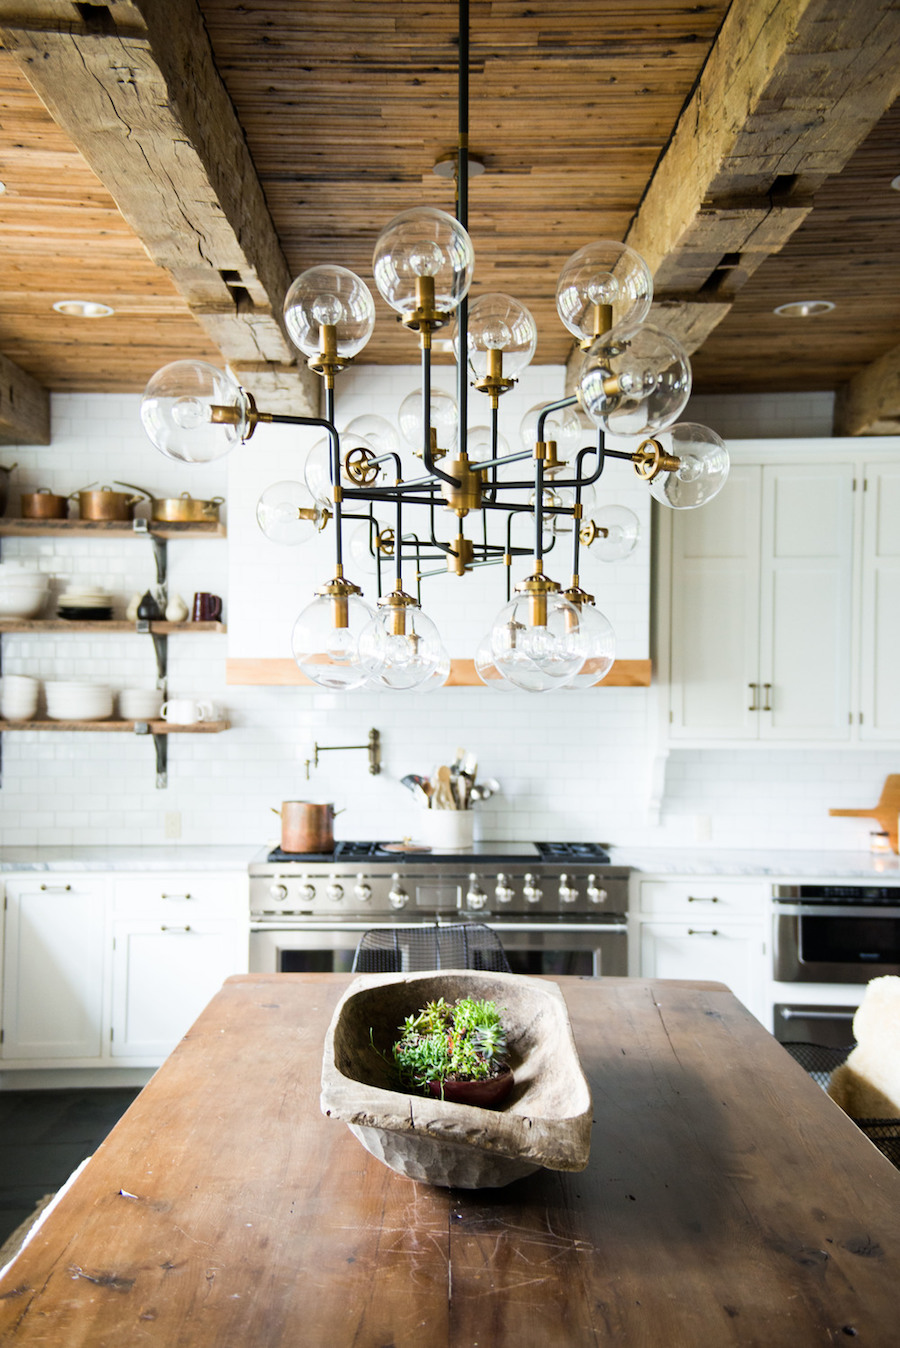 Rustic Wood Kitchen Island and Brass Chandelier with Real Wood Beam Ceiling via Midland Architecture